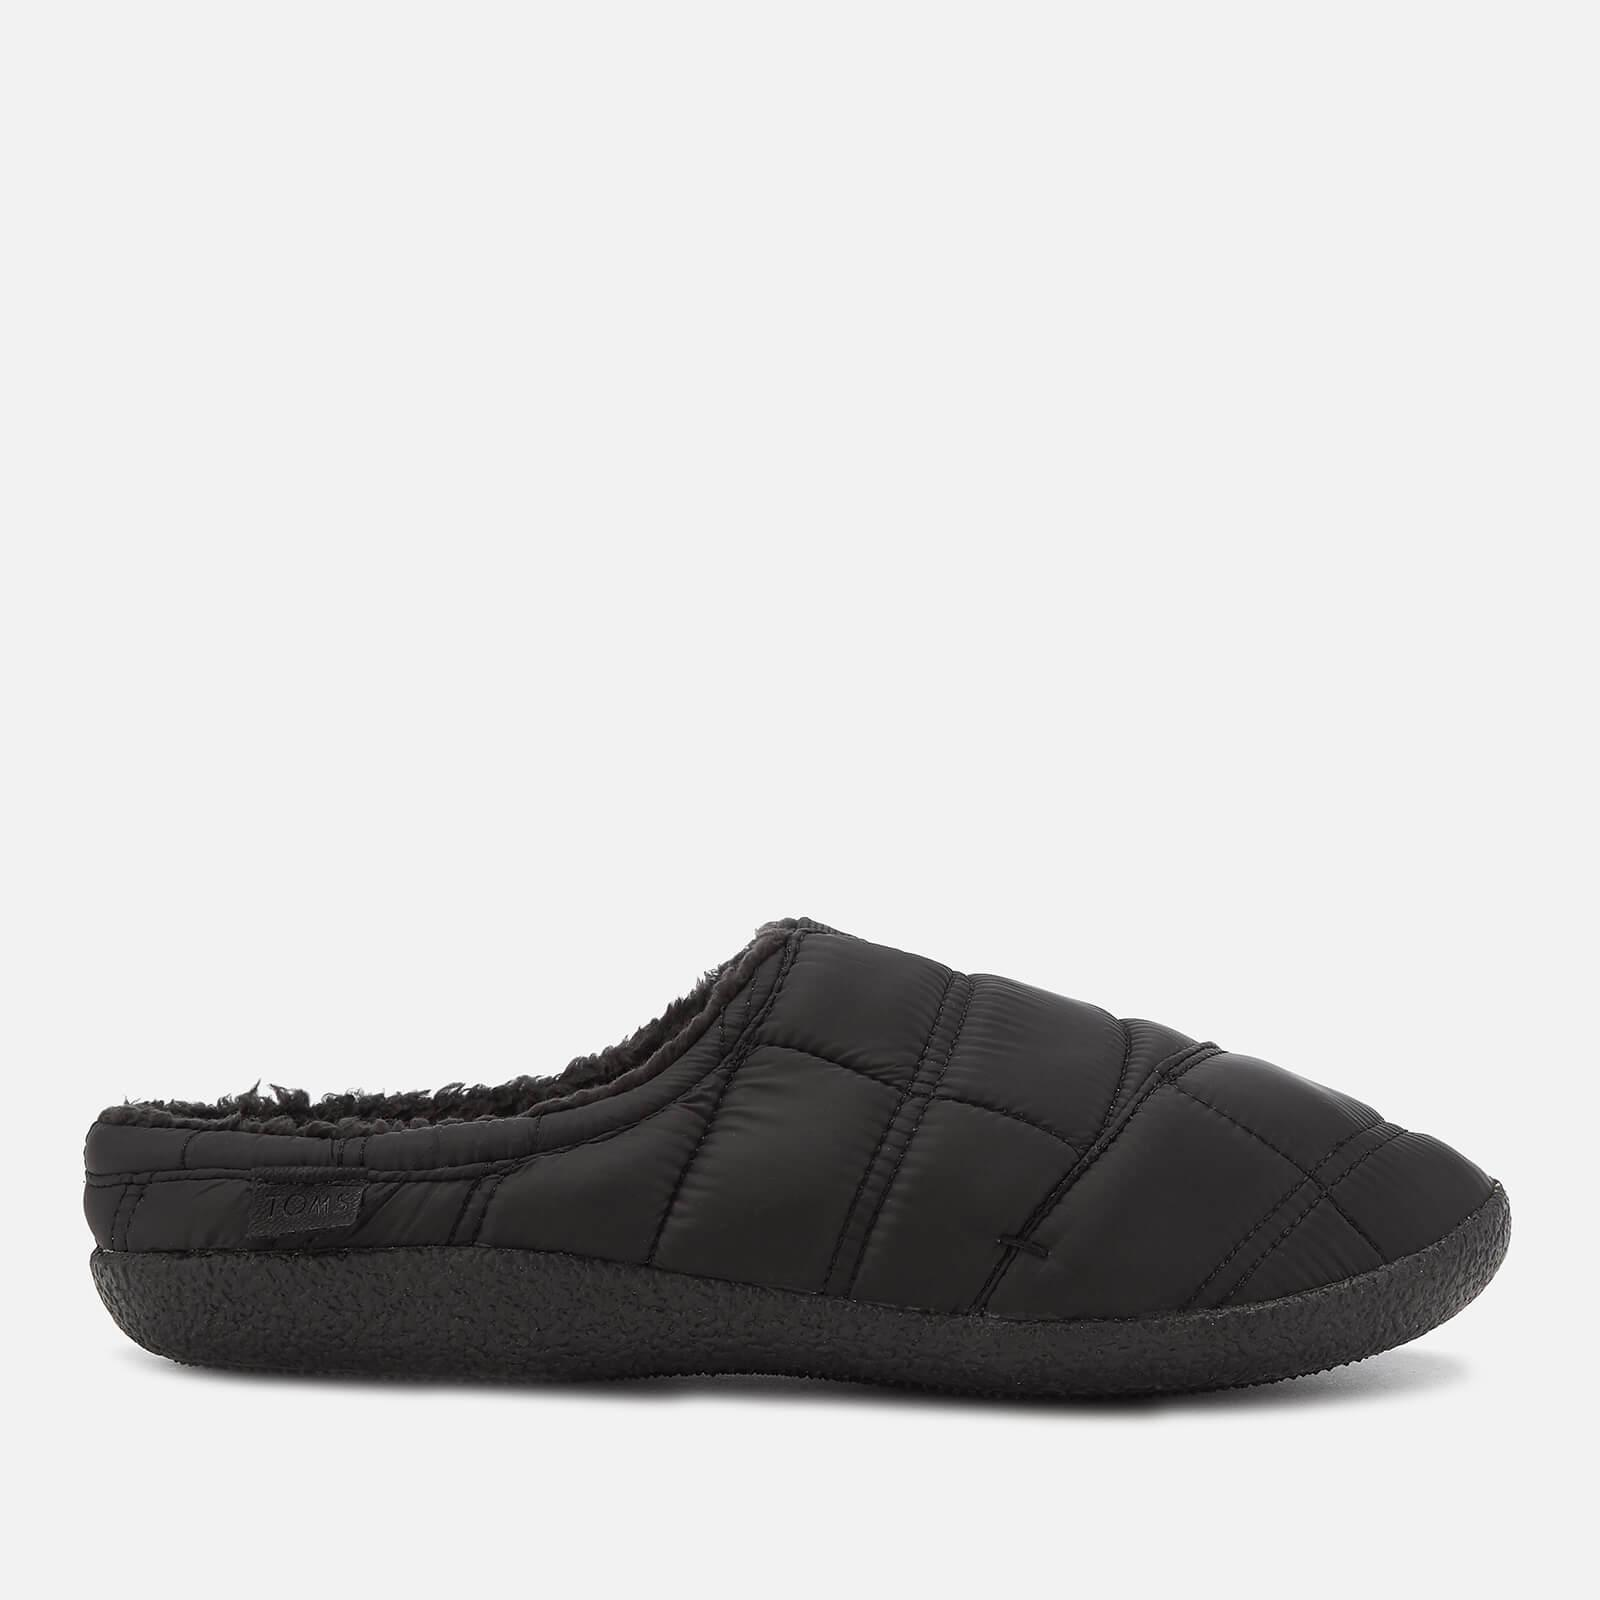 02691f01b4d1 Lyst - TOMS Berkeley Quilted Slippers in Black for Men - Save 9%